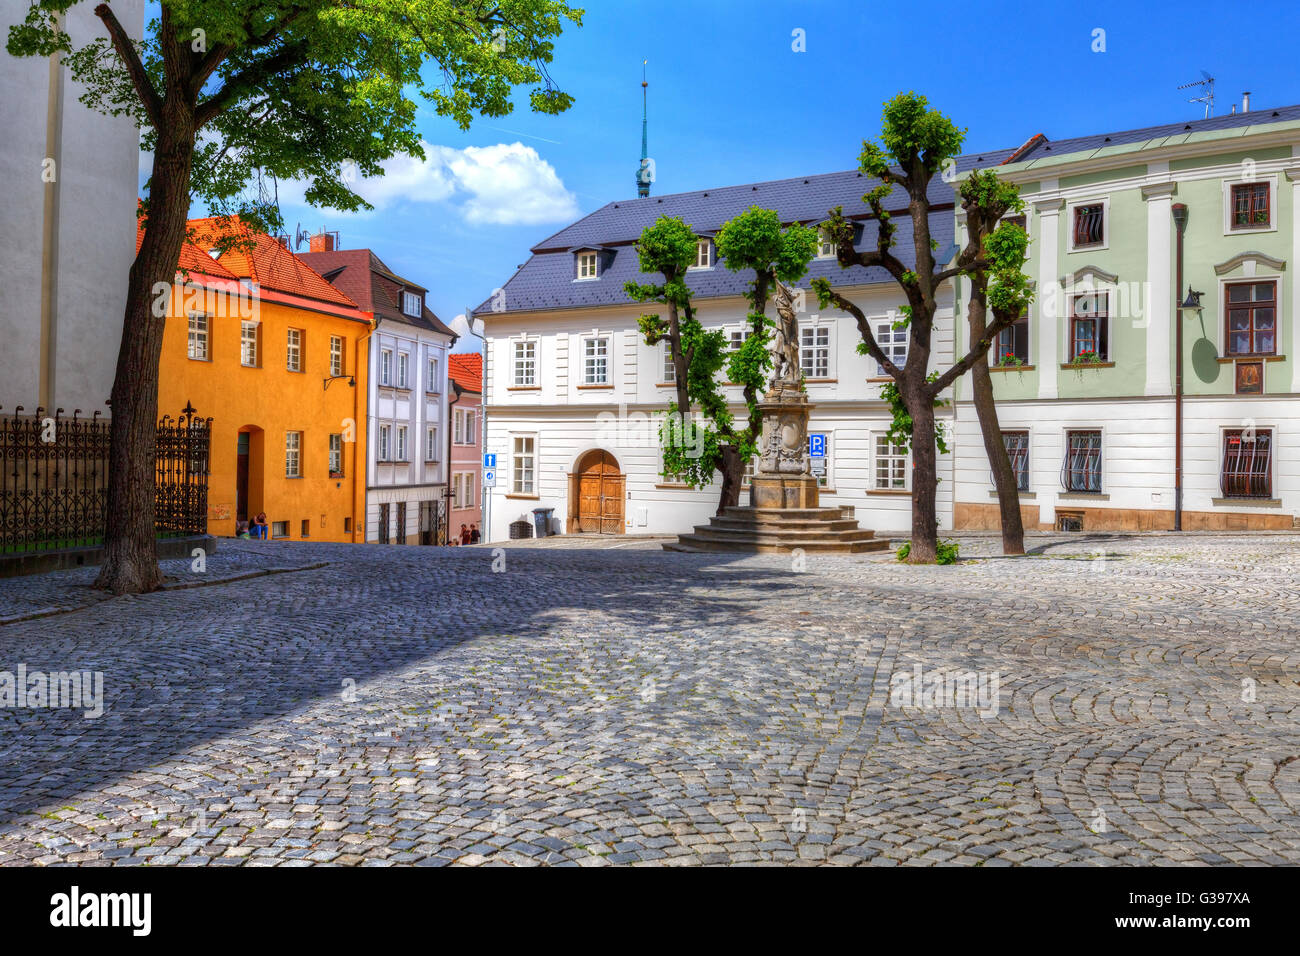 Streets in the old town of Olomouc, Czech Republic. HDR image. - Stock Image